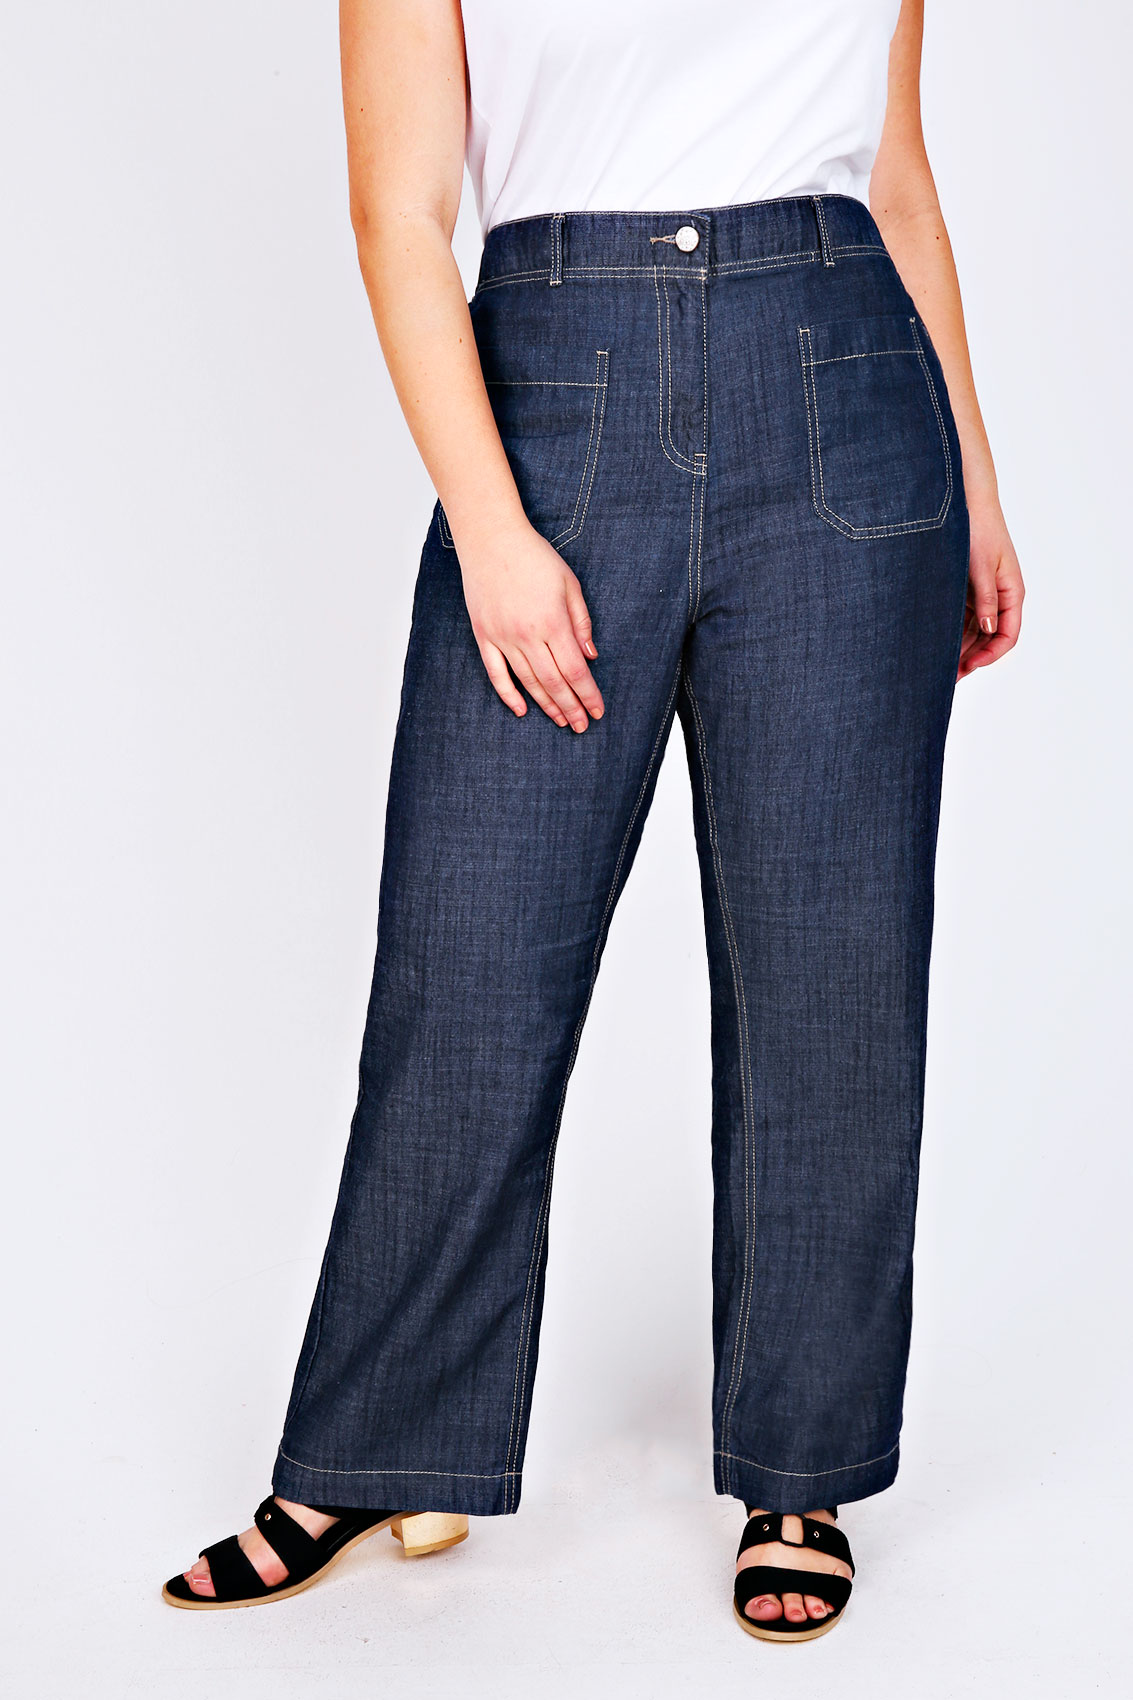 Find great deals on eBay for plus size wide leg jeans. Shop with confidence.